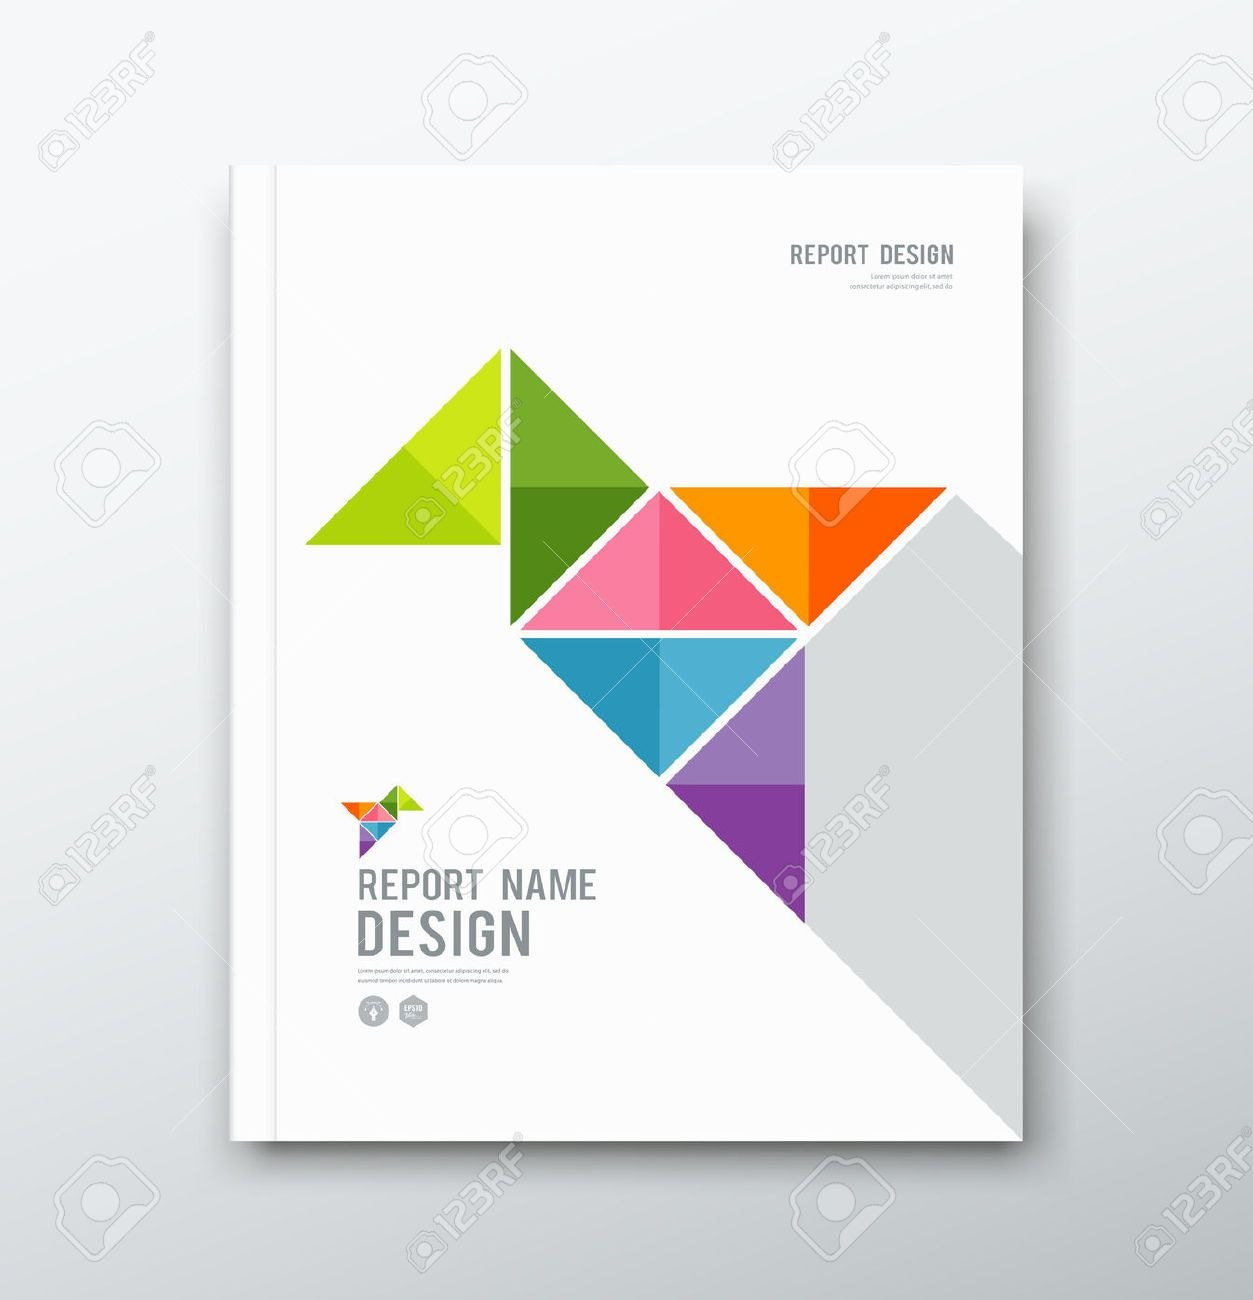 Stock Vector  Graphic Design  Cover Page Template Cover Page For Word Report Cover Page Template